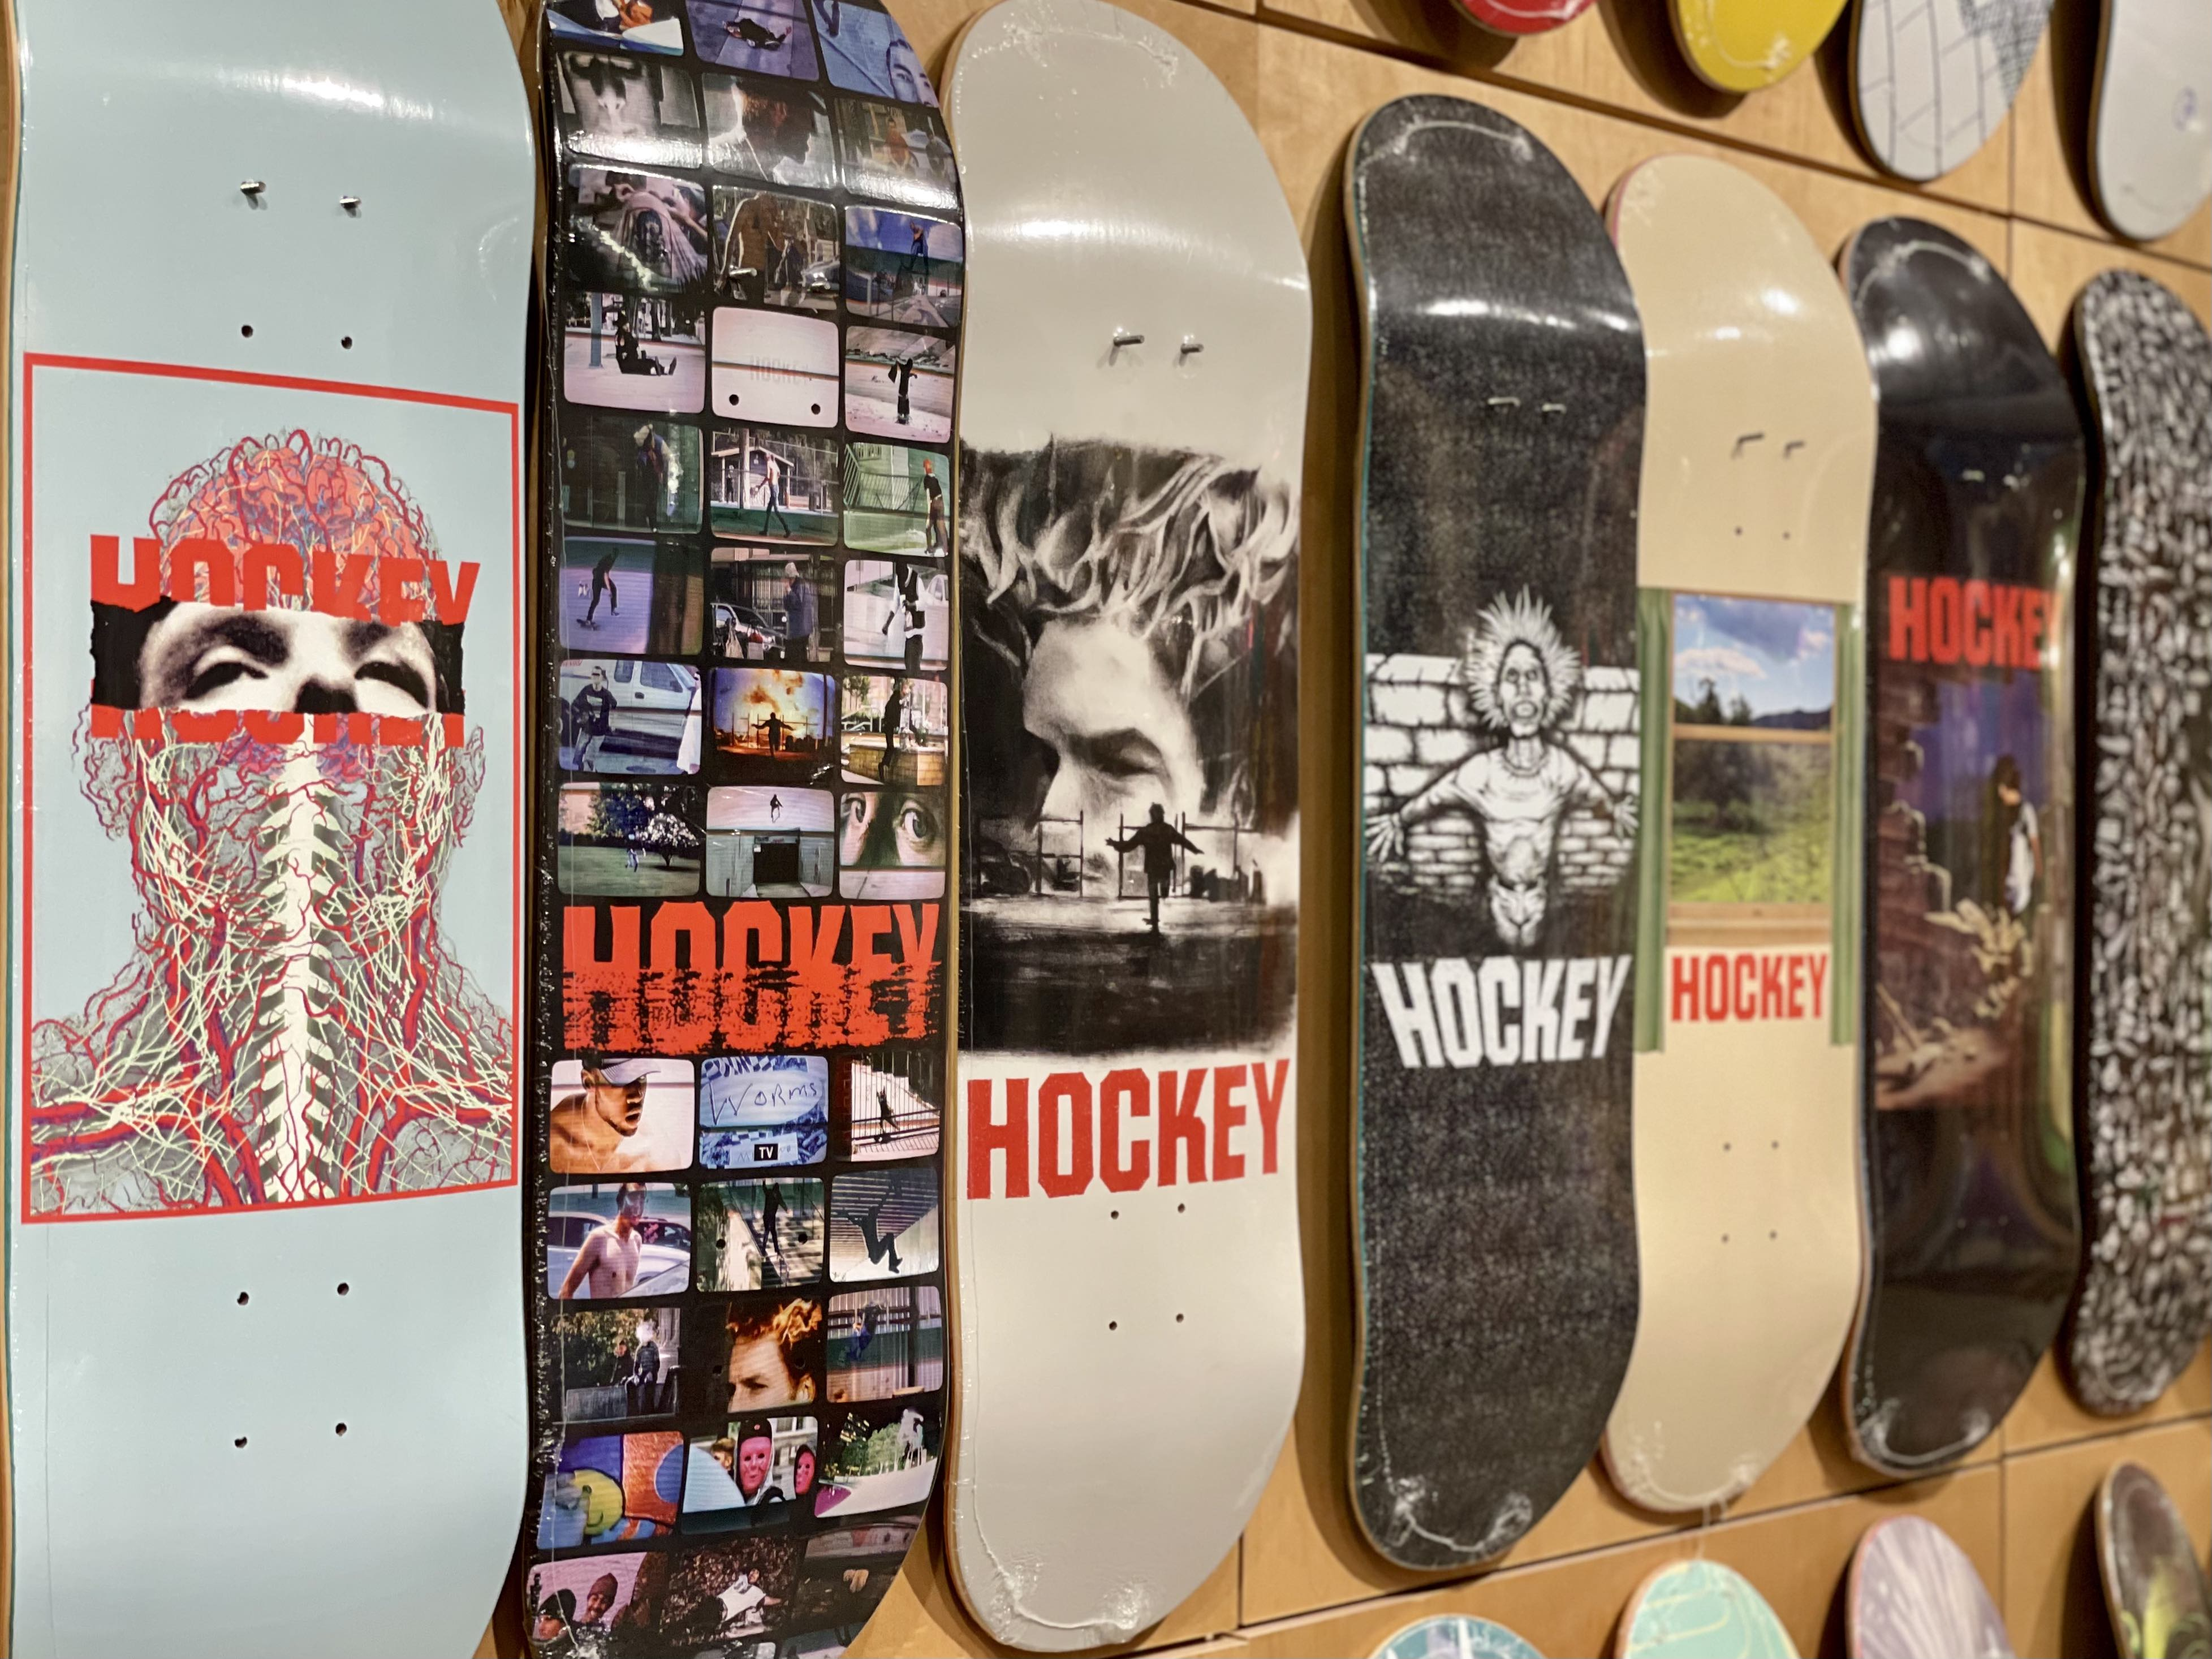 Hockey Spring 2021 Decks now available in-store